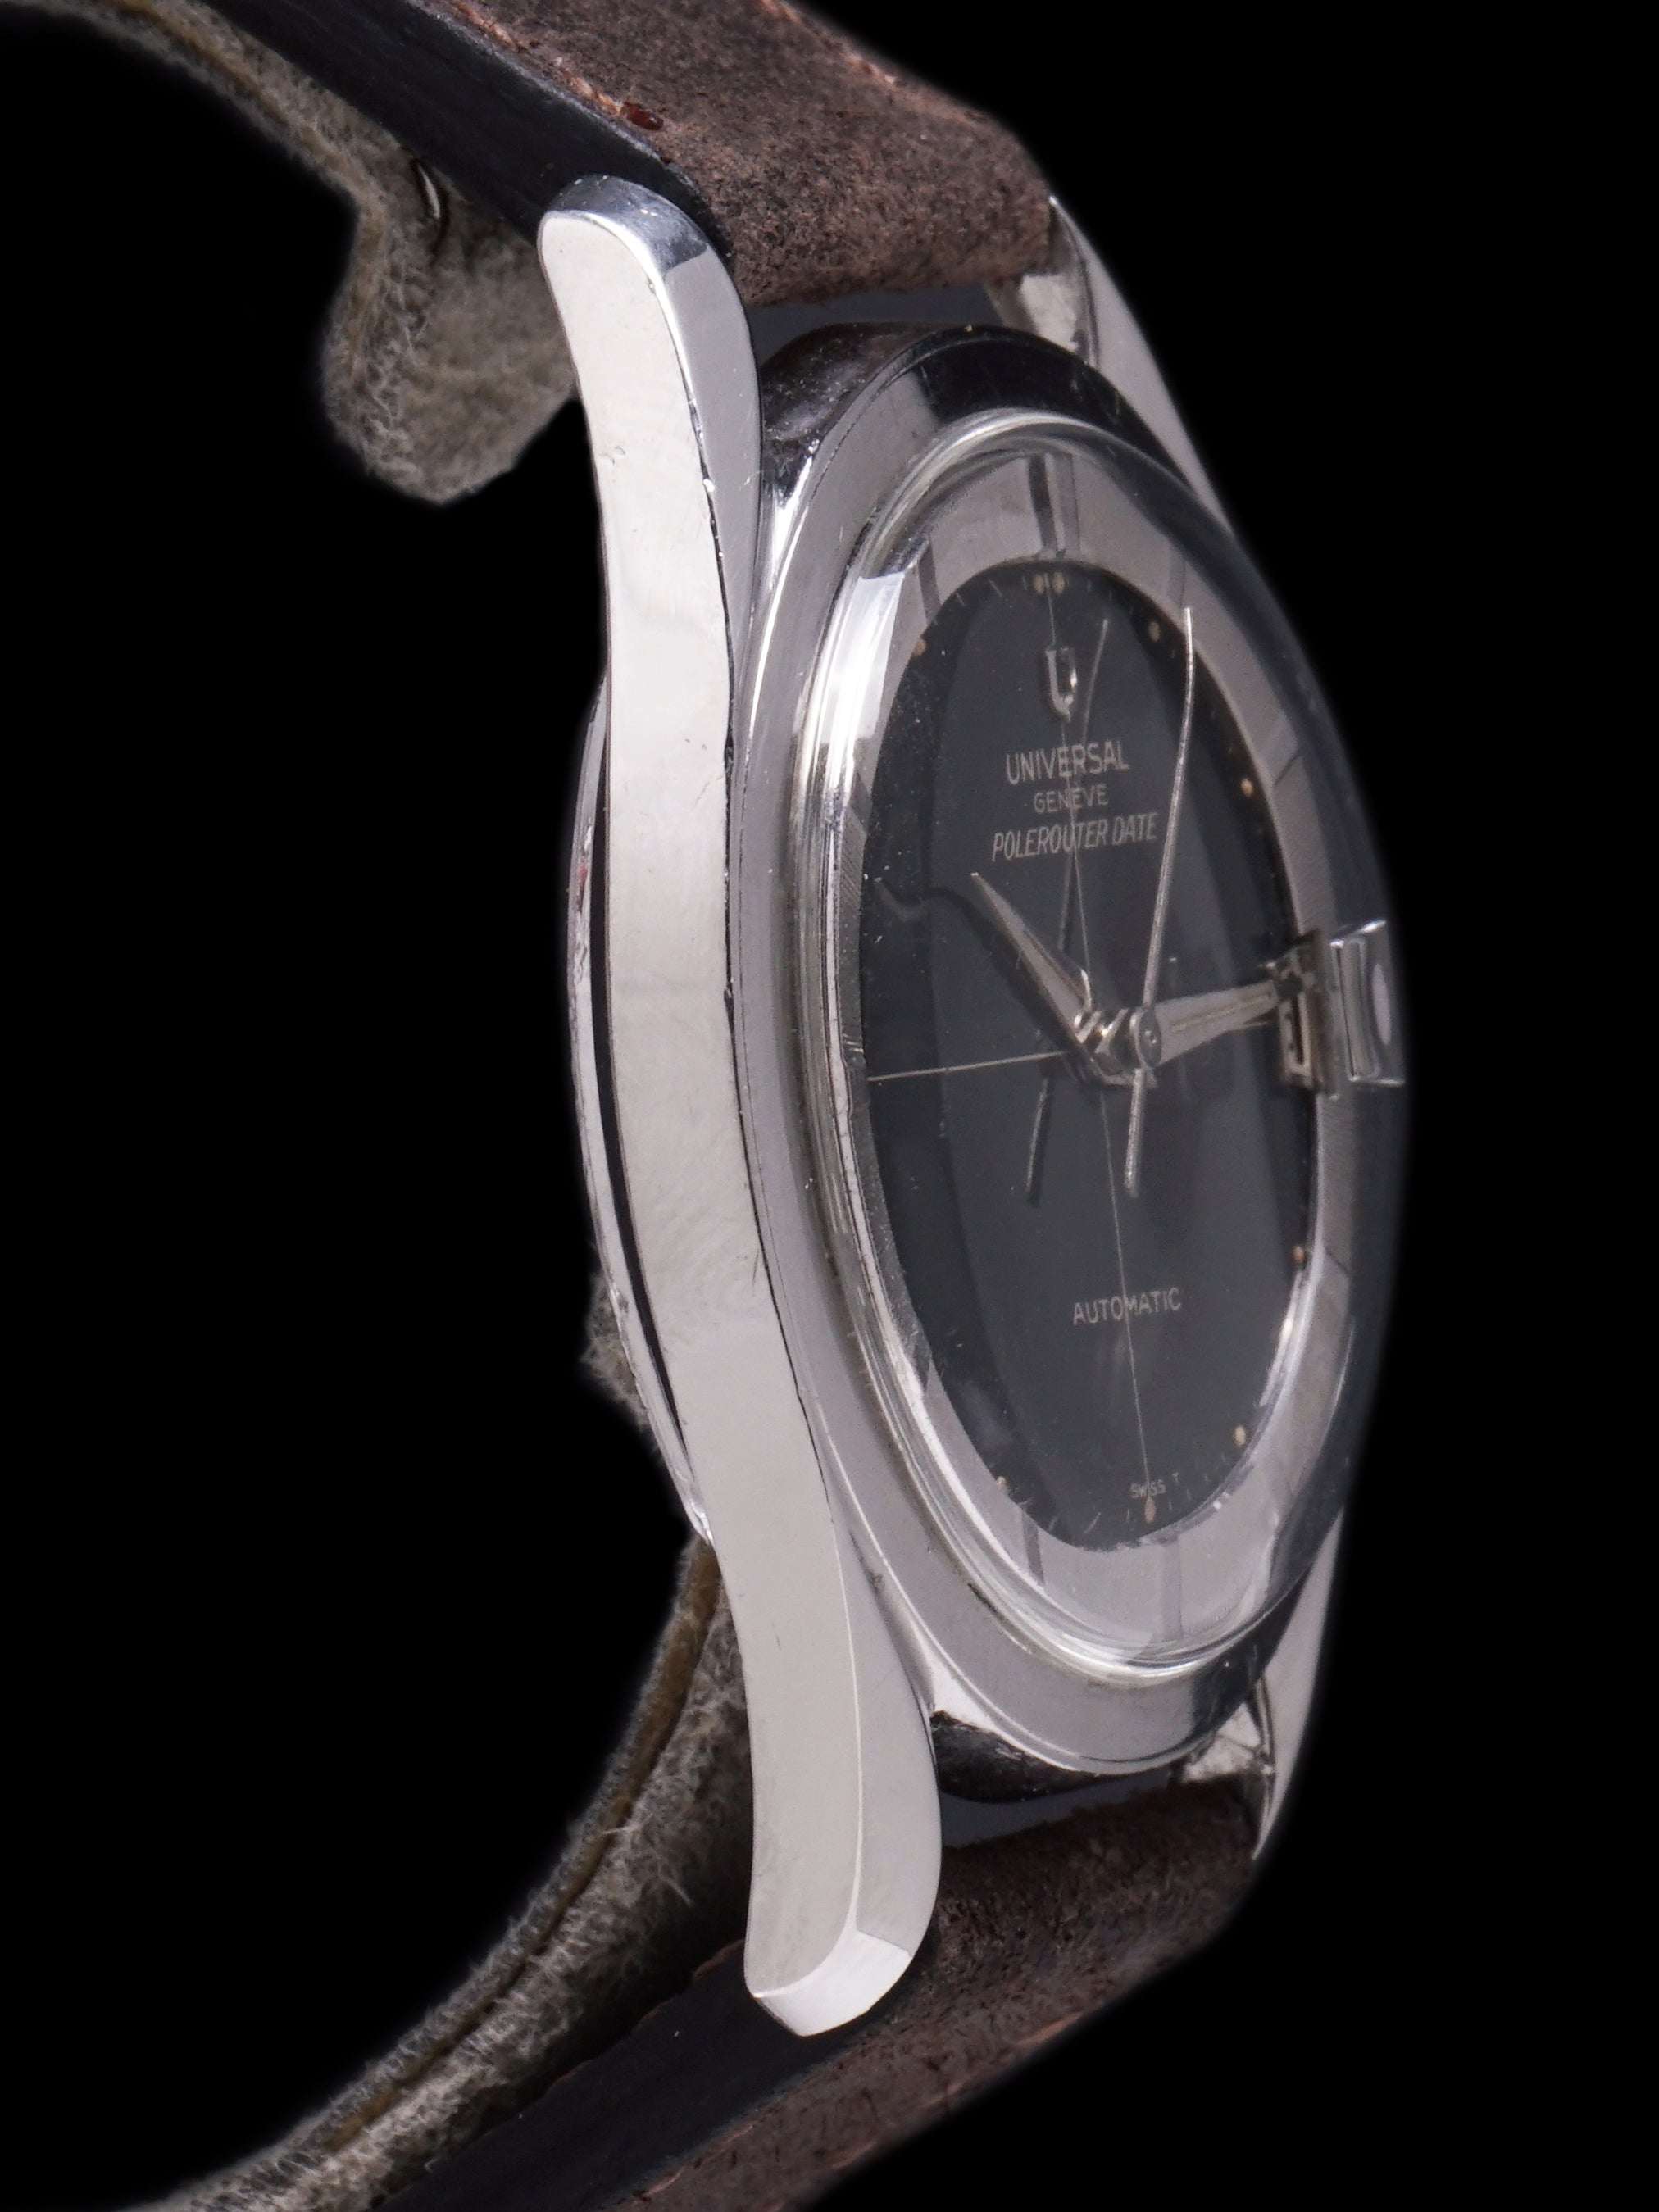 1965 Universal Geneve Polerouter Date (Ref.204607/1 ) Black Gilt Dial